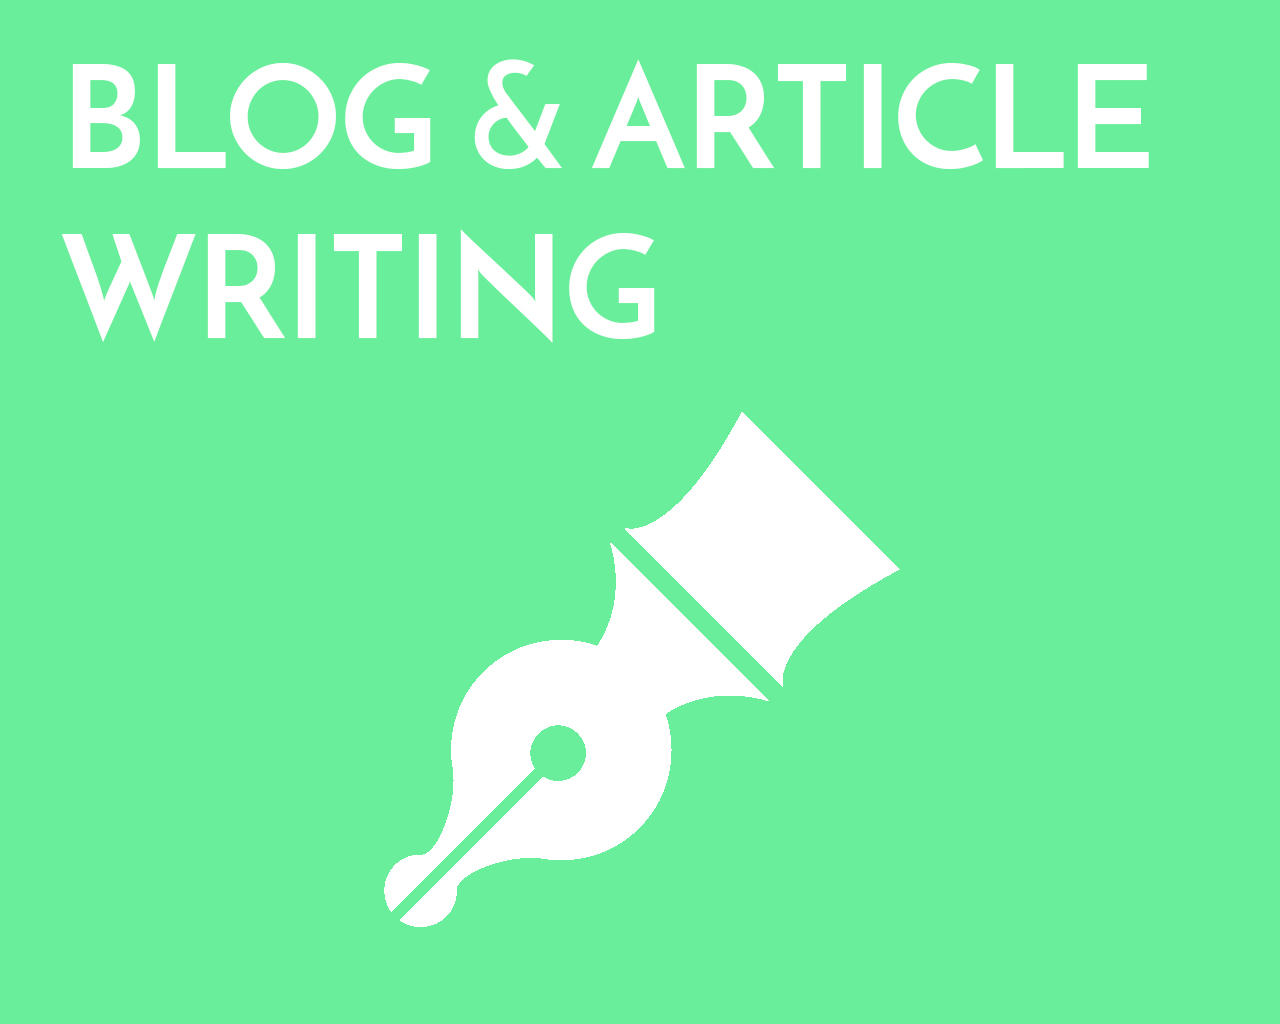 Blog writing service